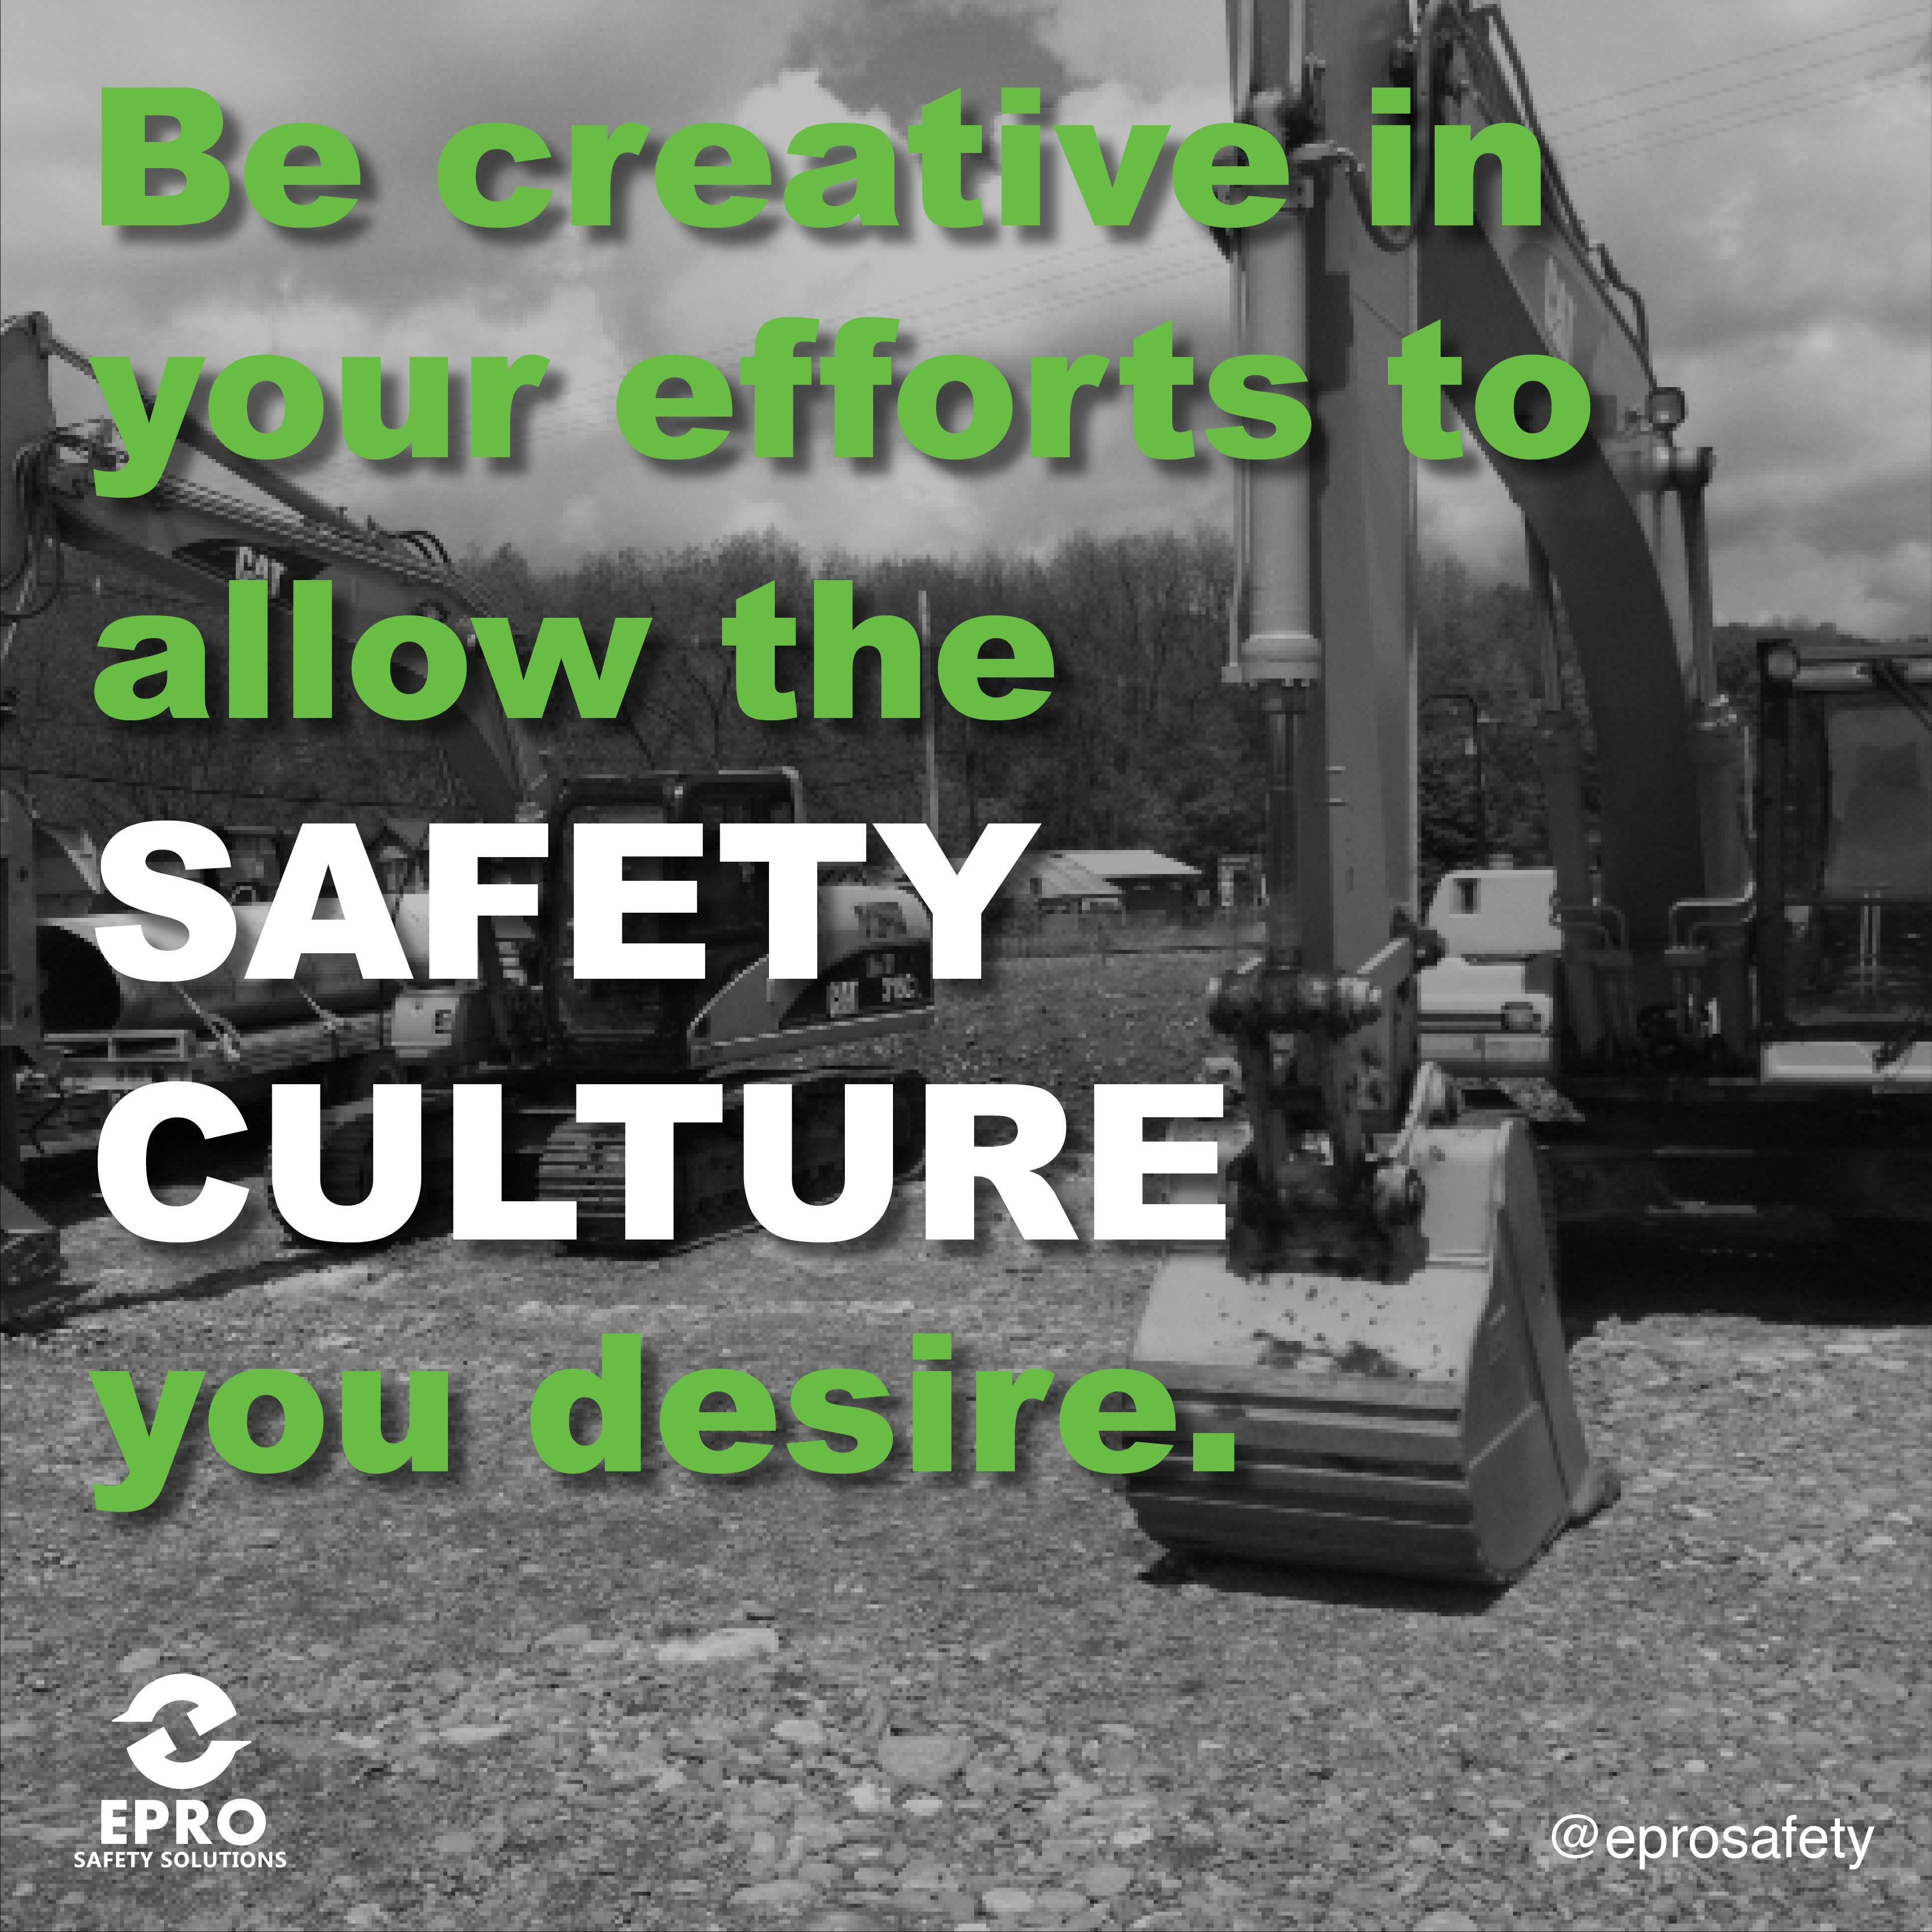 Be creative in your efforts to allow the safety culture